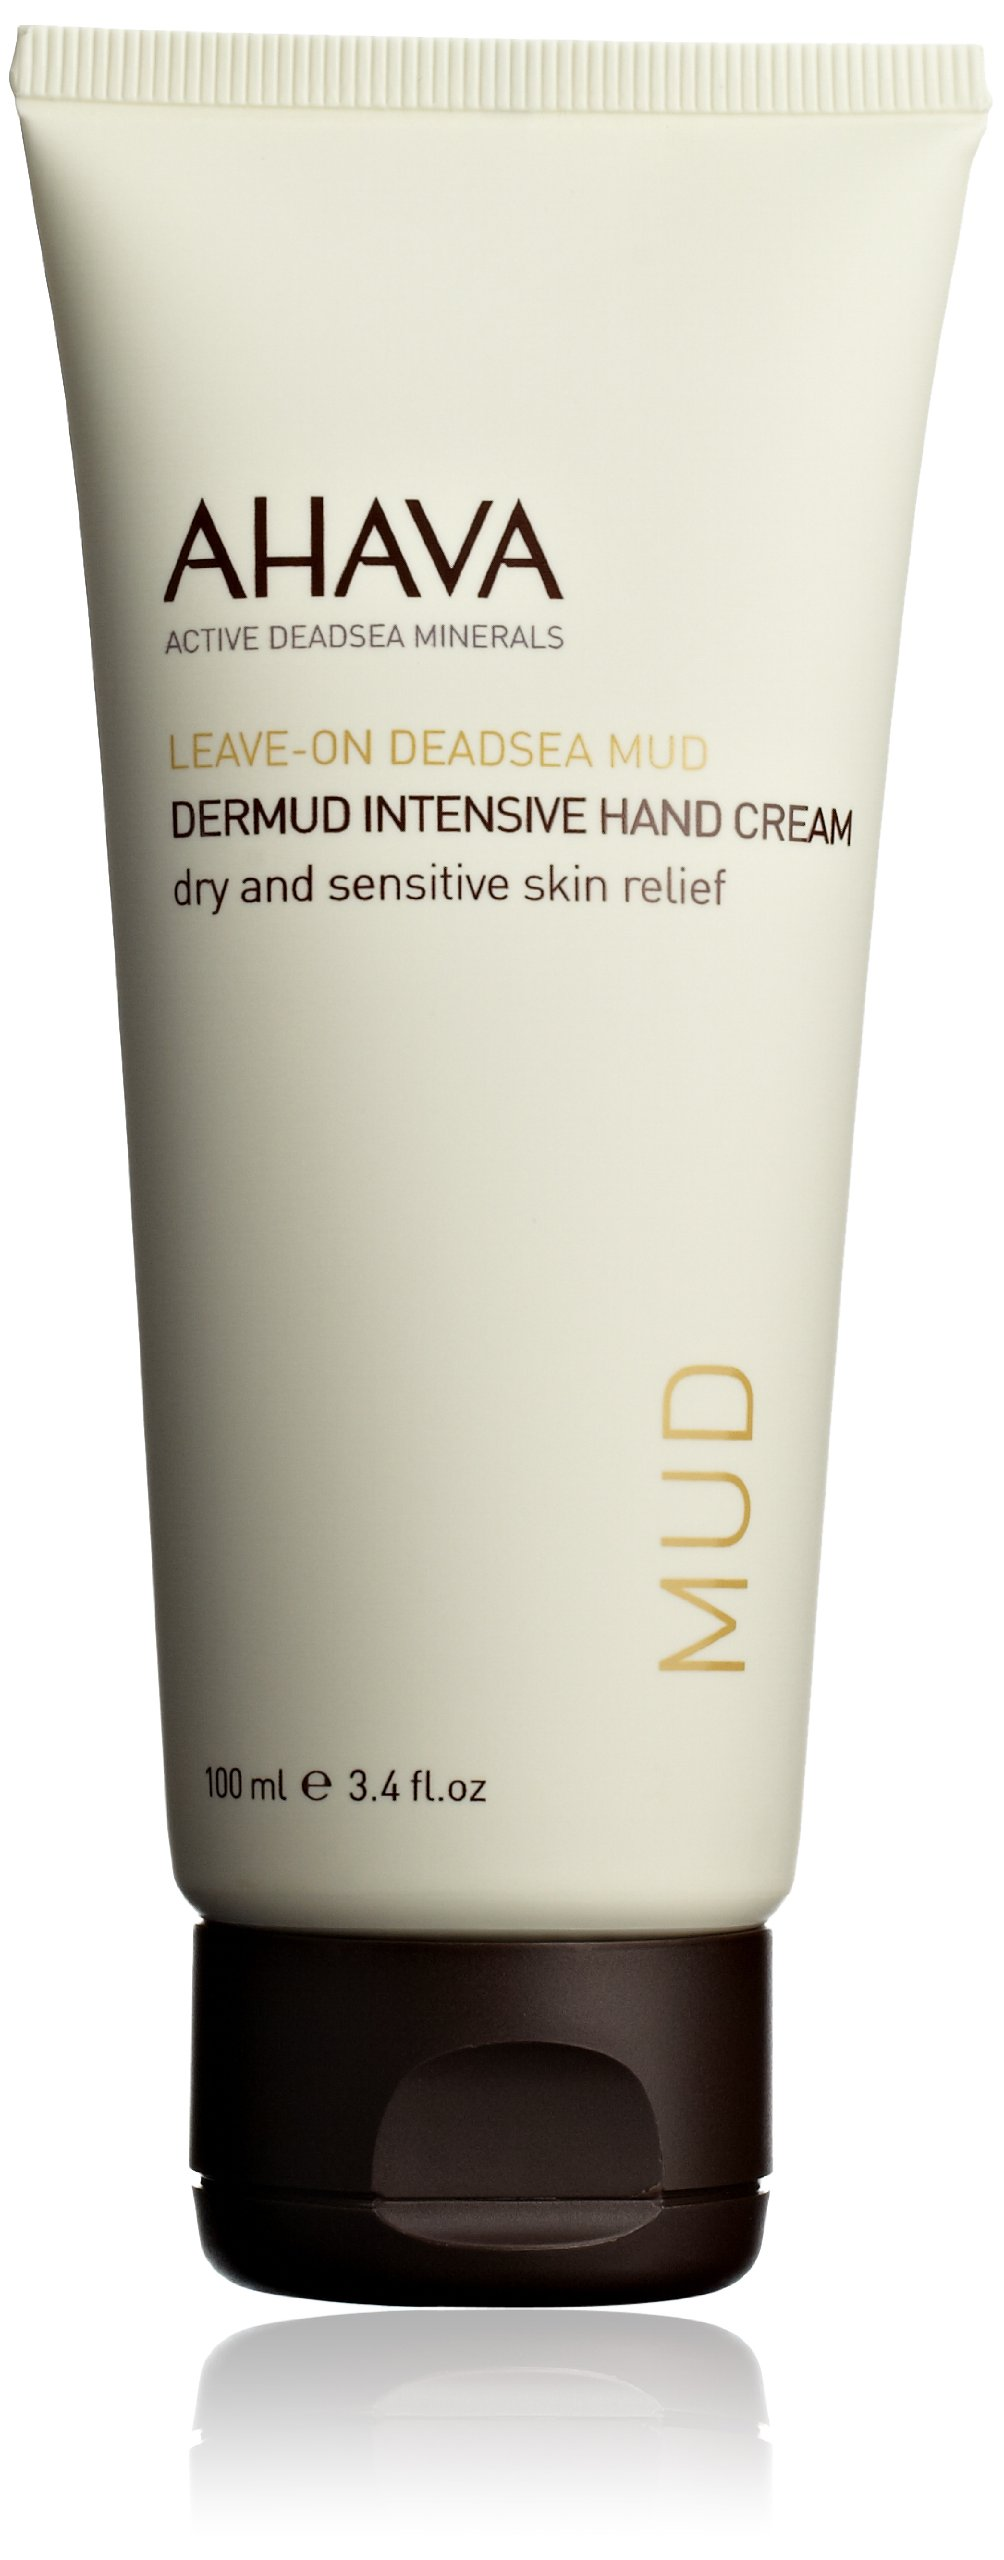 AHAVA Dead Sea Mud Dermud Intensive Hand Cream, 3.4 fl. oz.